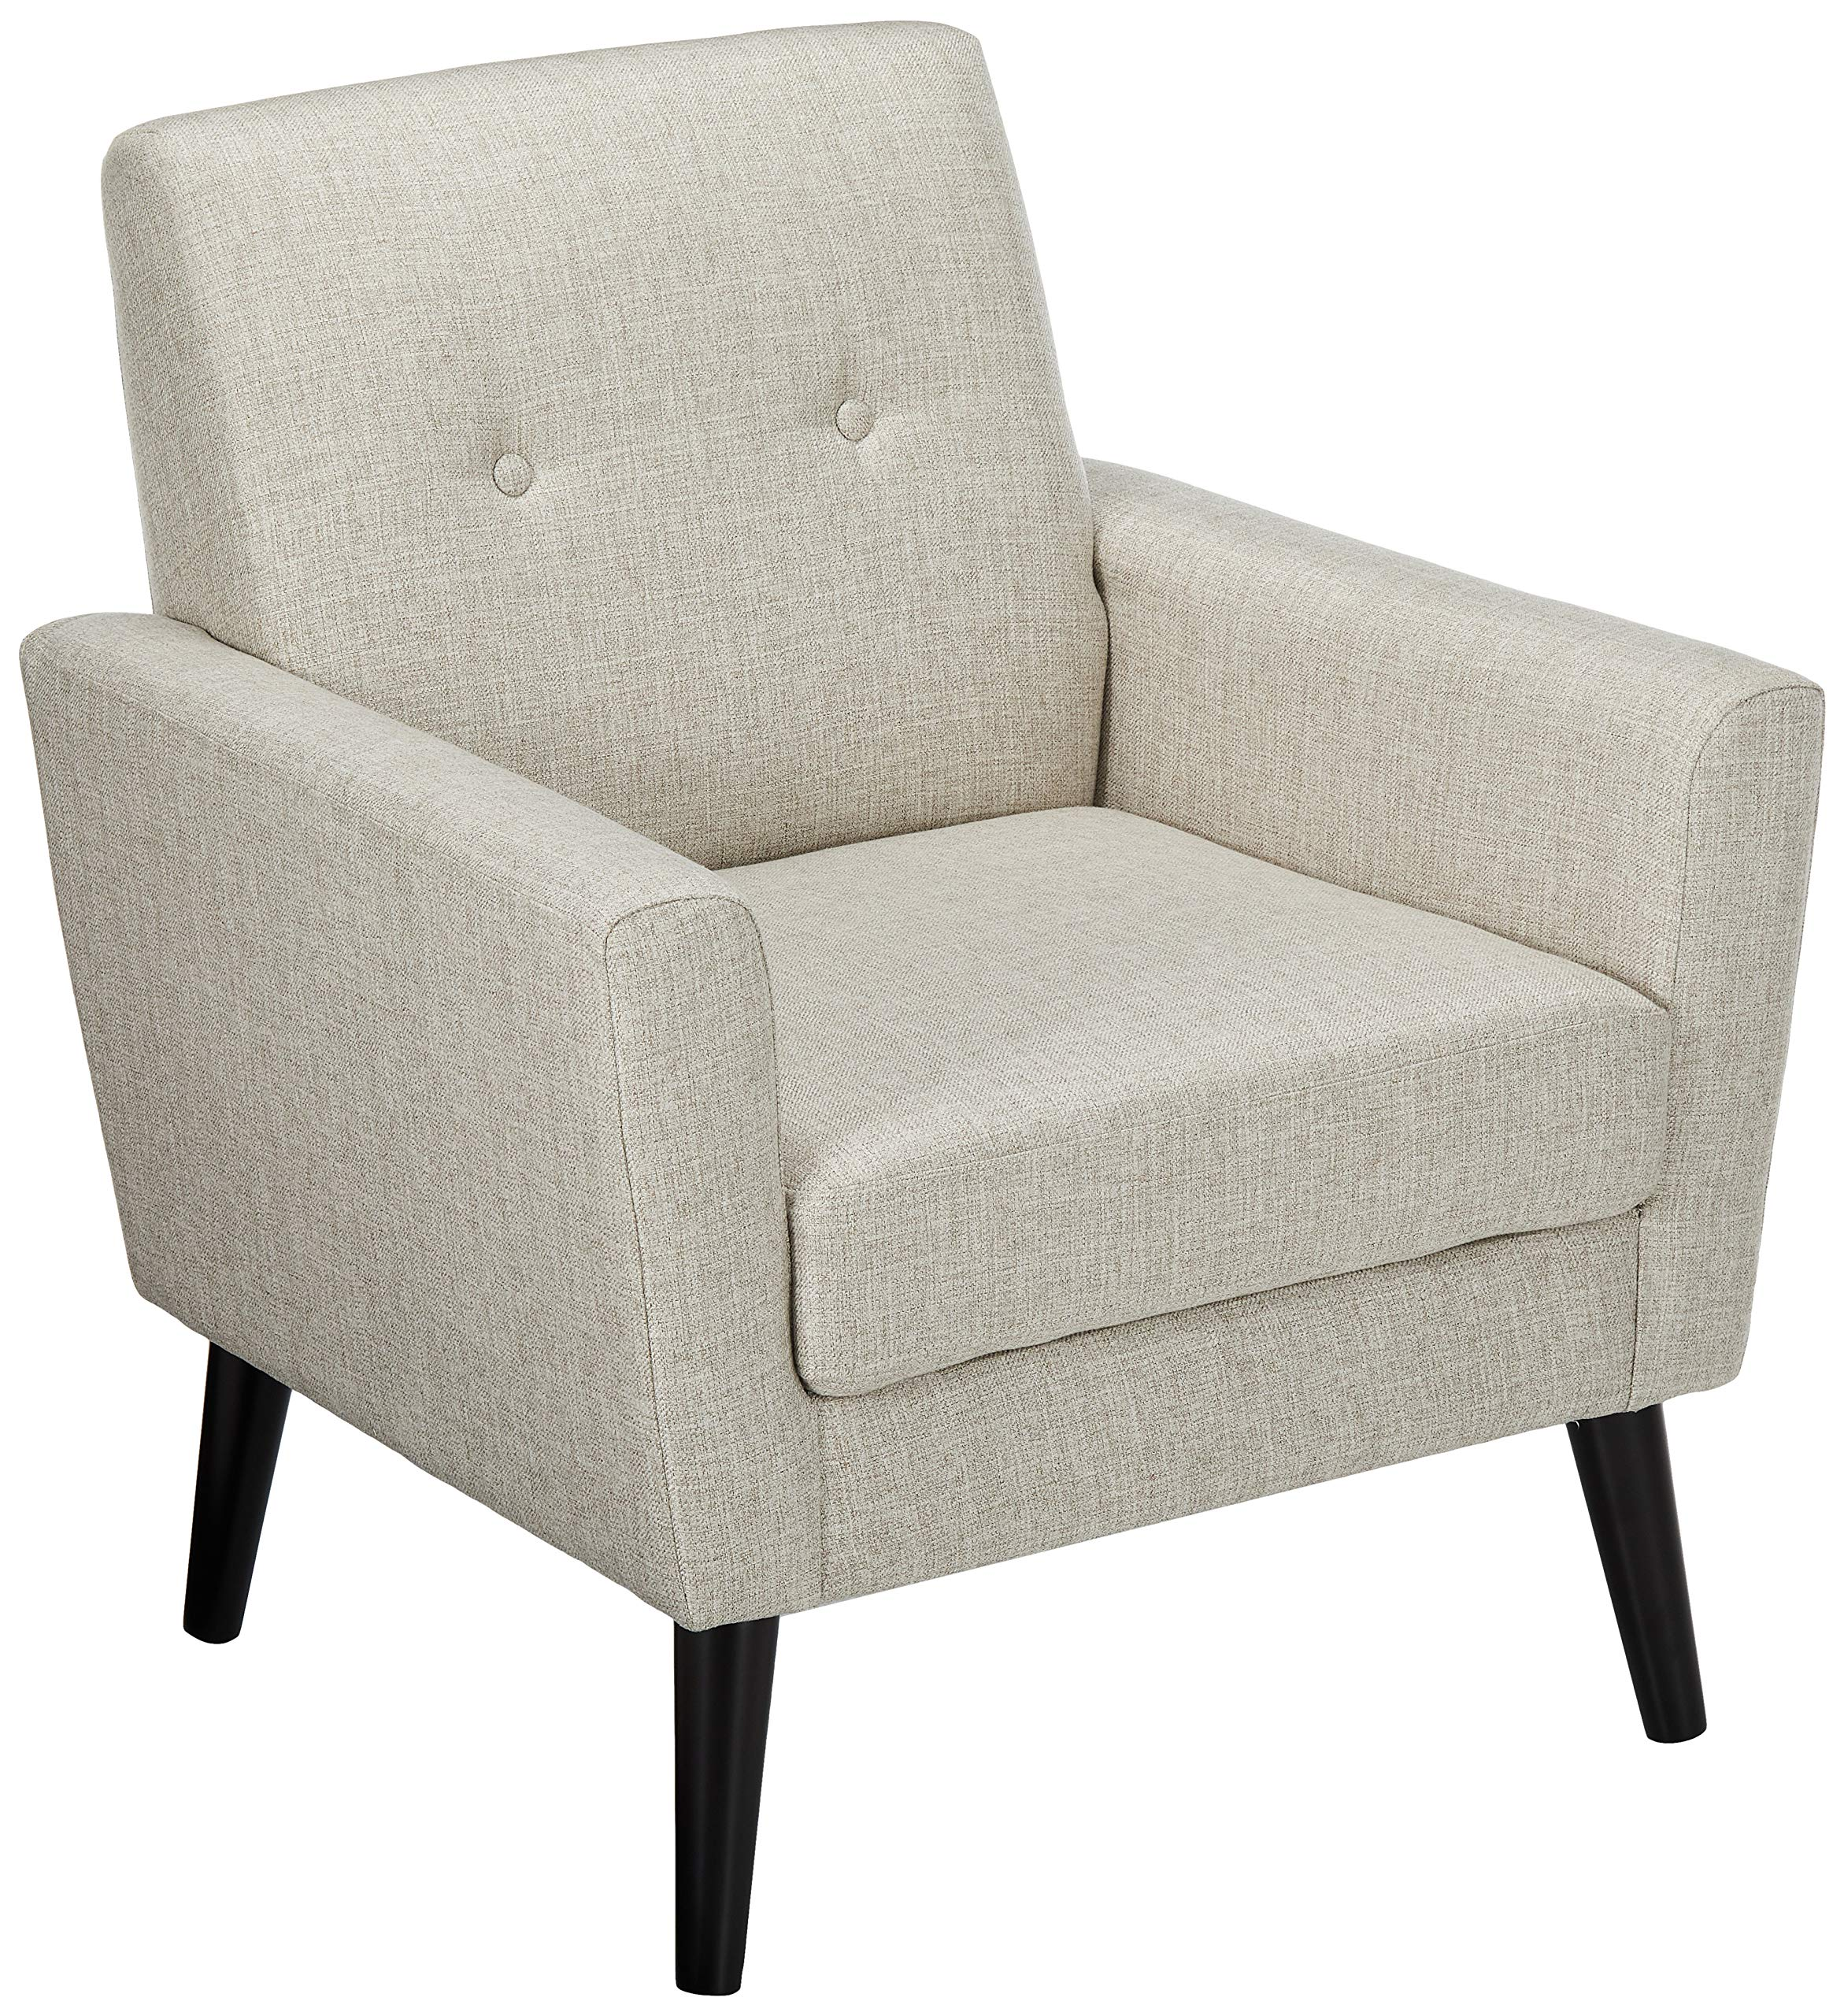 Christopher Knight Home 303244 Sierra Mid Century Beige Fabric Club Chair by Christopher Knight Home